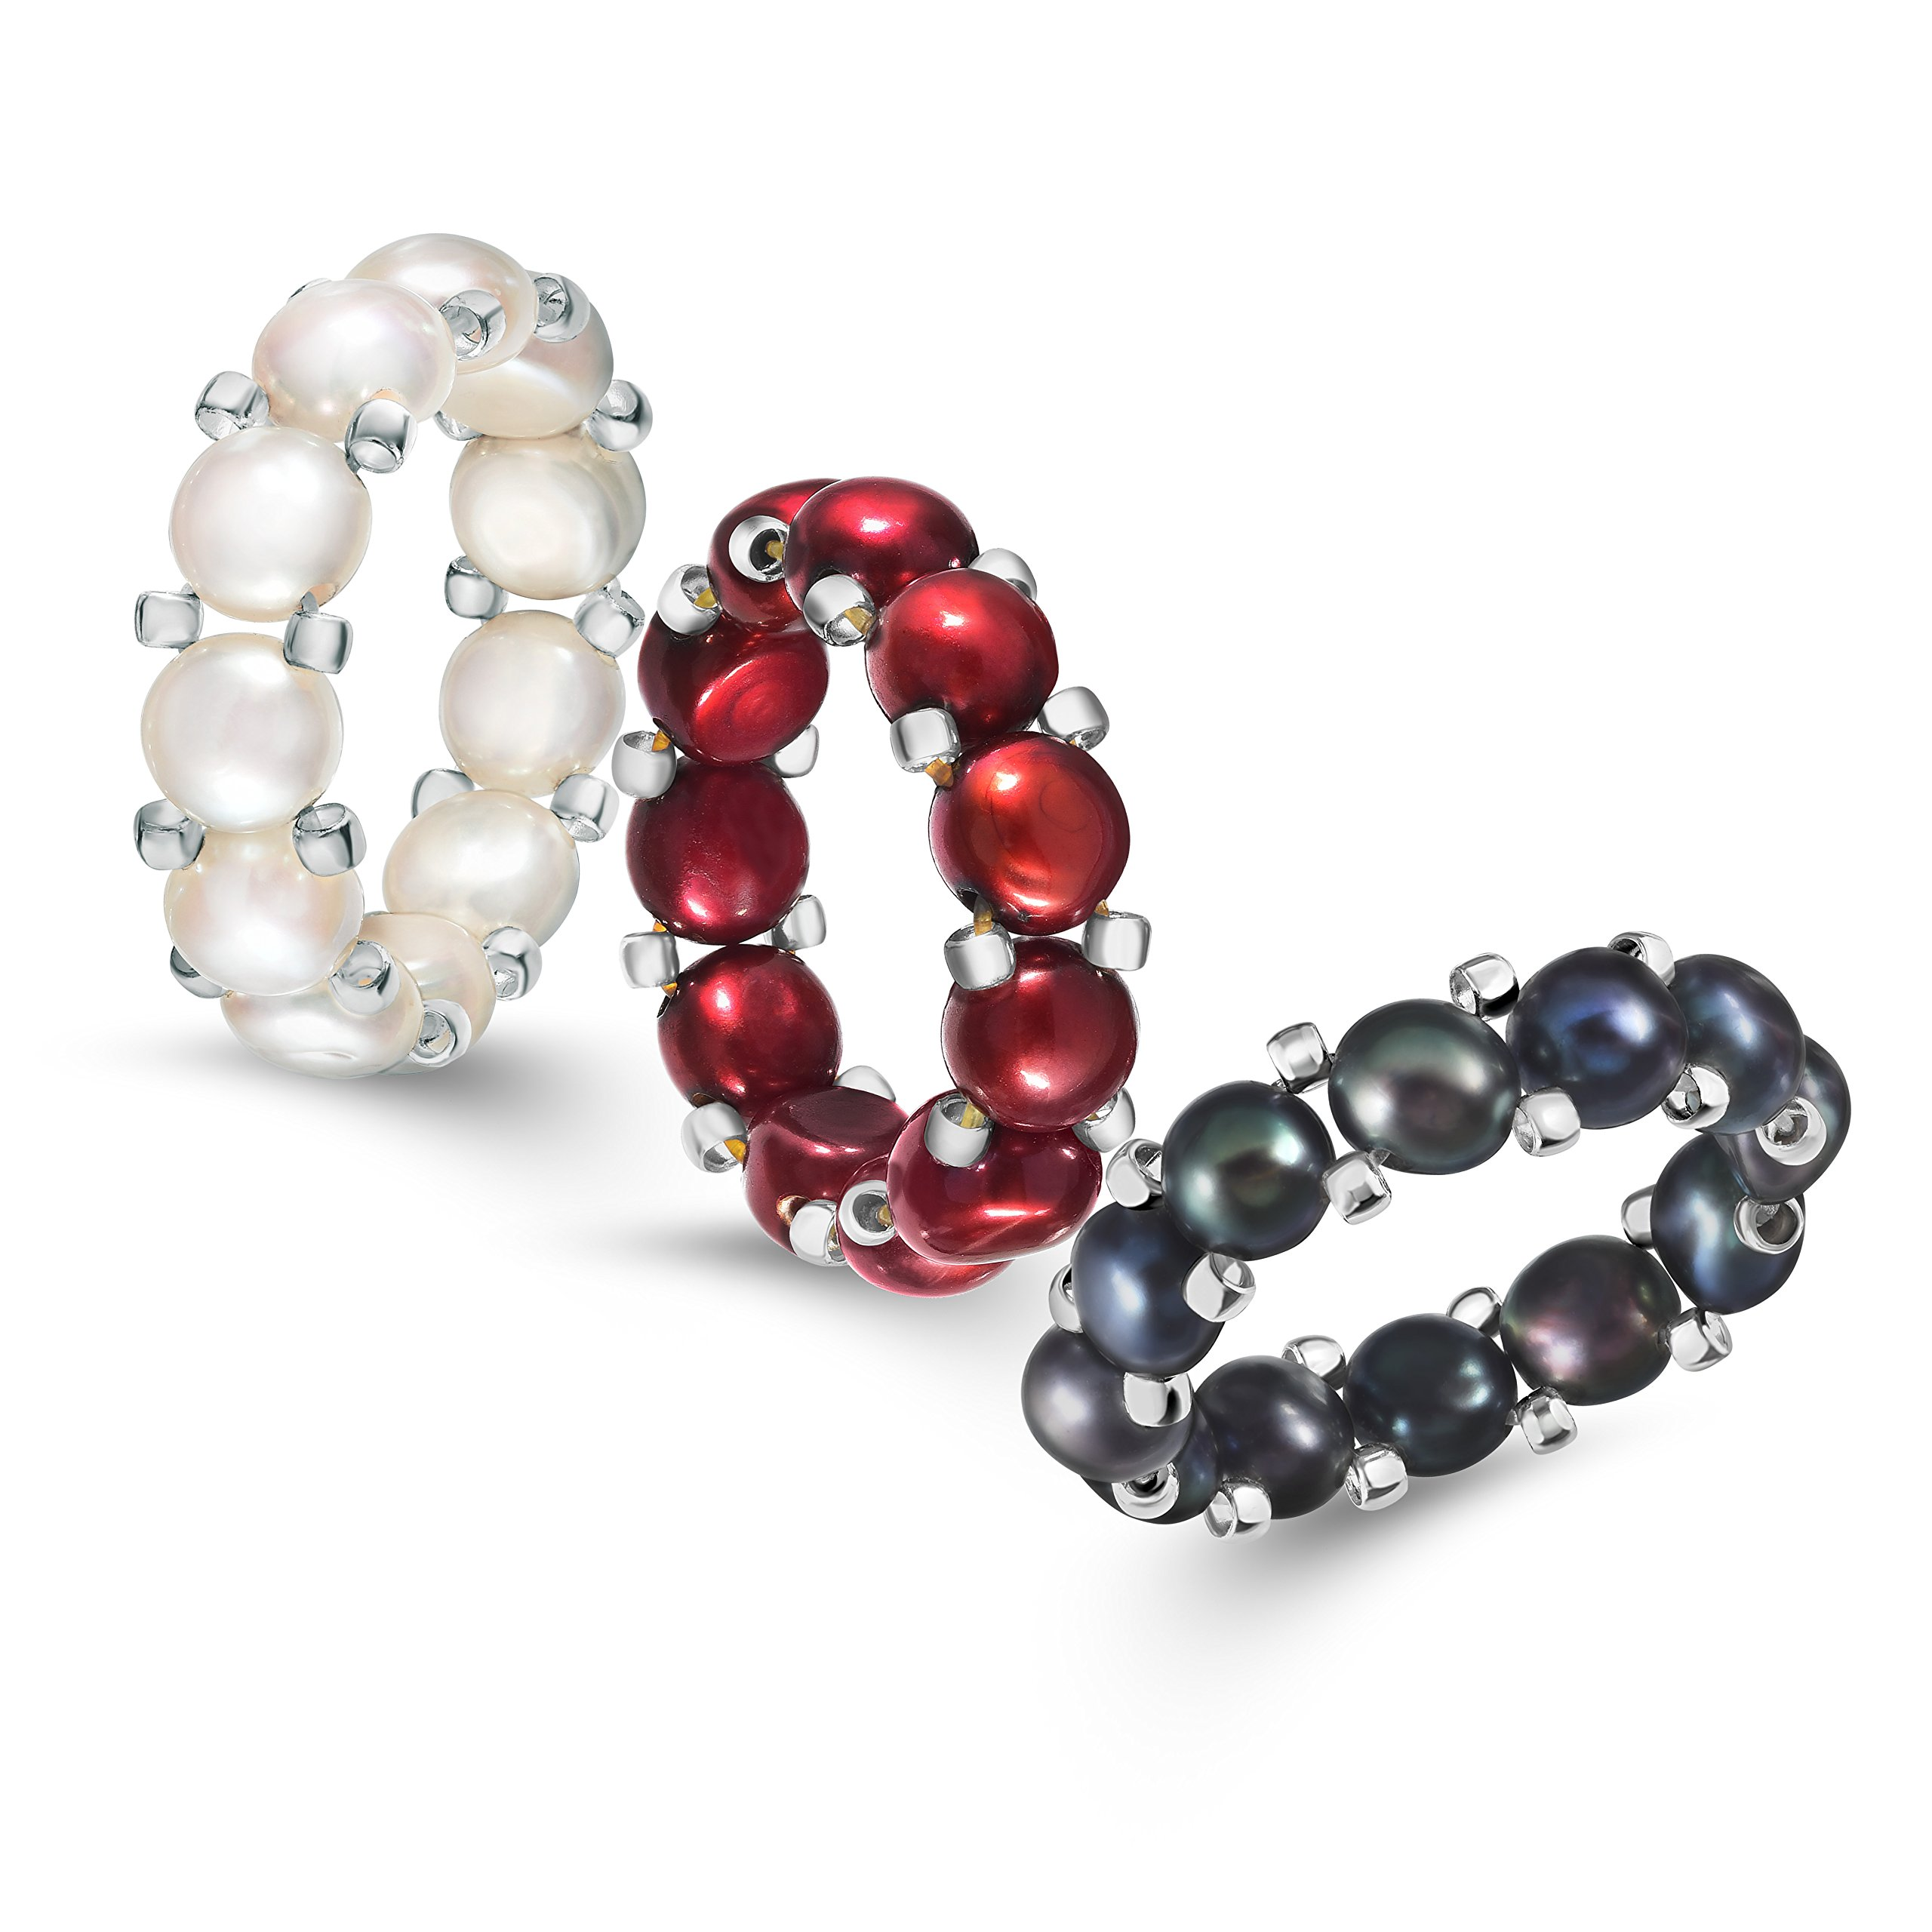 White, Red and Multicolor Freshwater Cultured Pearl Stretch Ring with Silver Beads (6-6.5mm), Set of 3